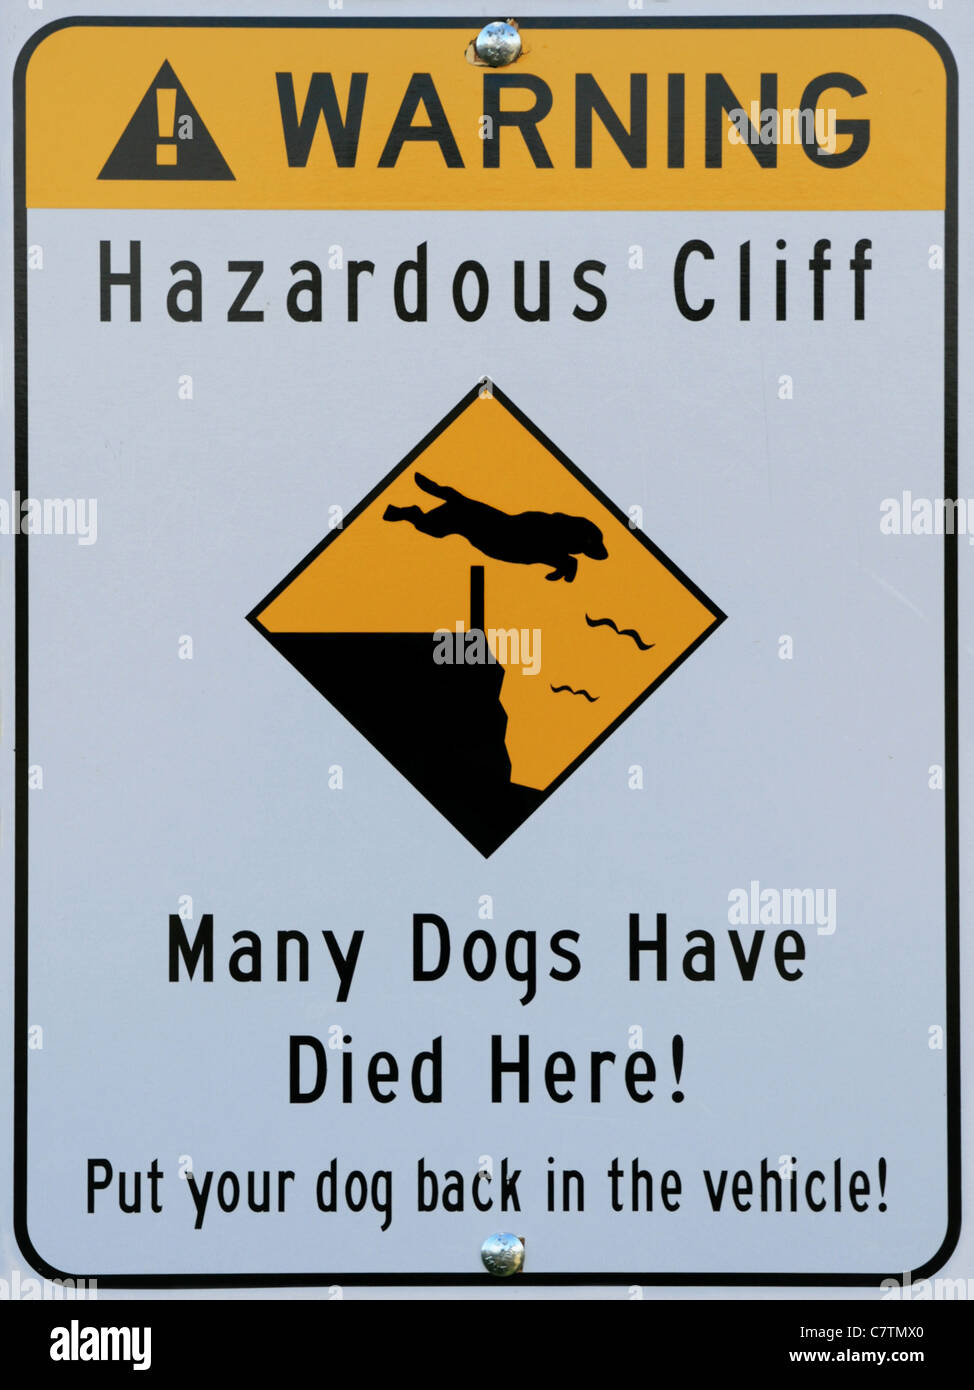 hazardous cliff warning sign showing a dog jumping over a fence and over a cliff - Stock Image